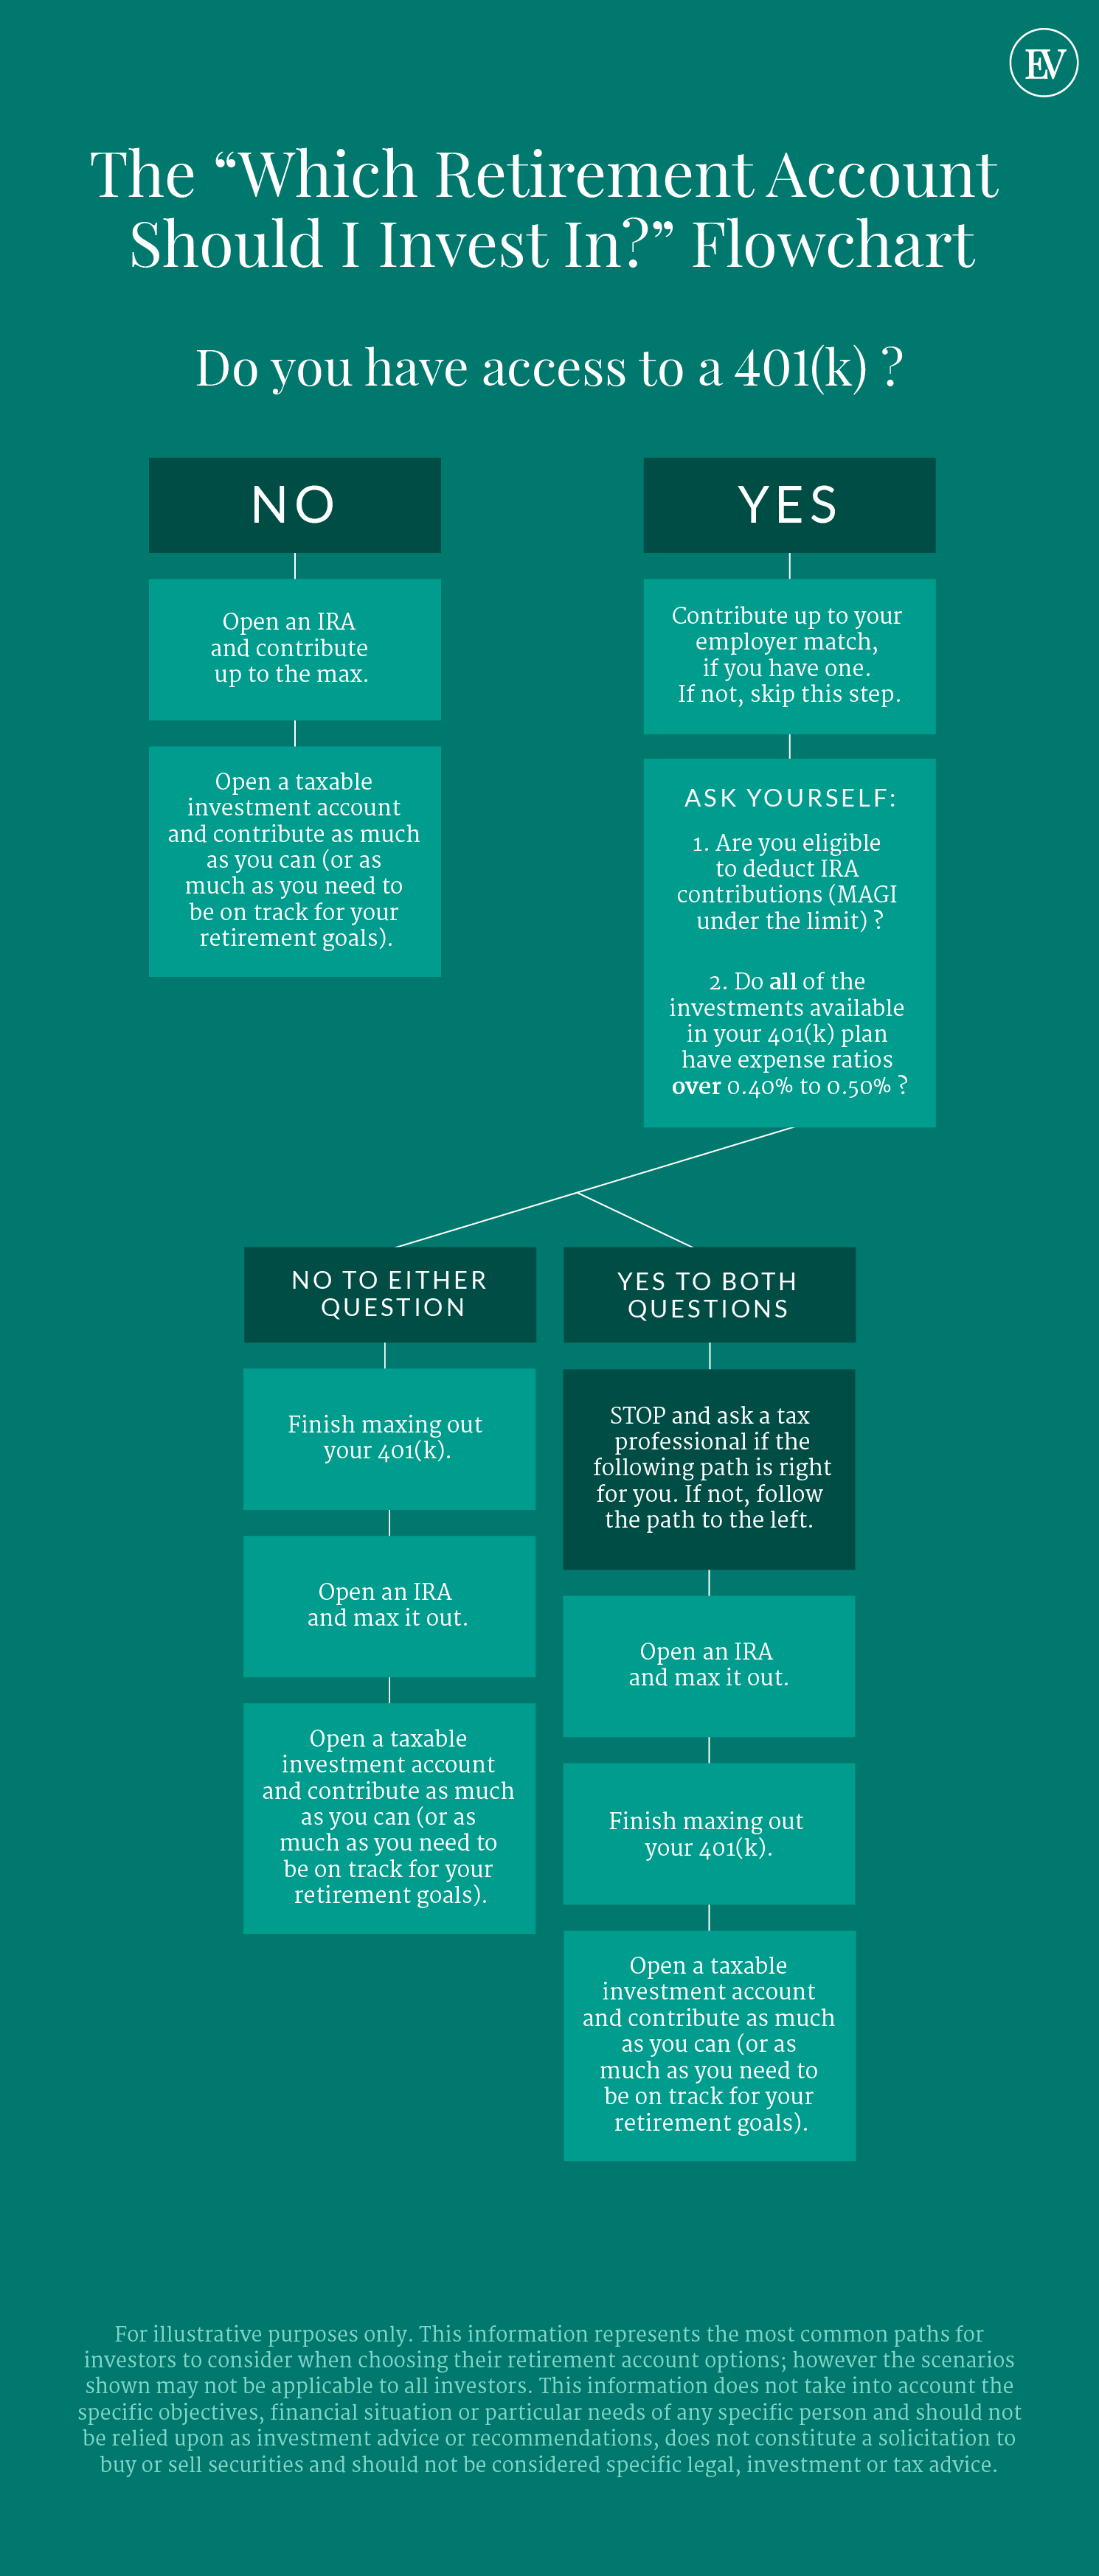 Flowchart: Which Retirement Account Should I Invest In?